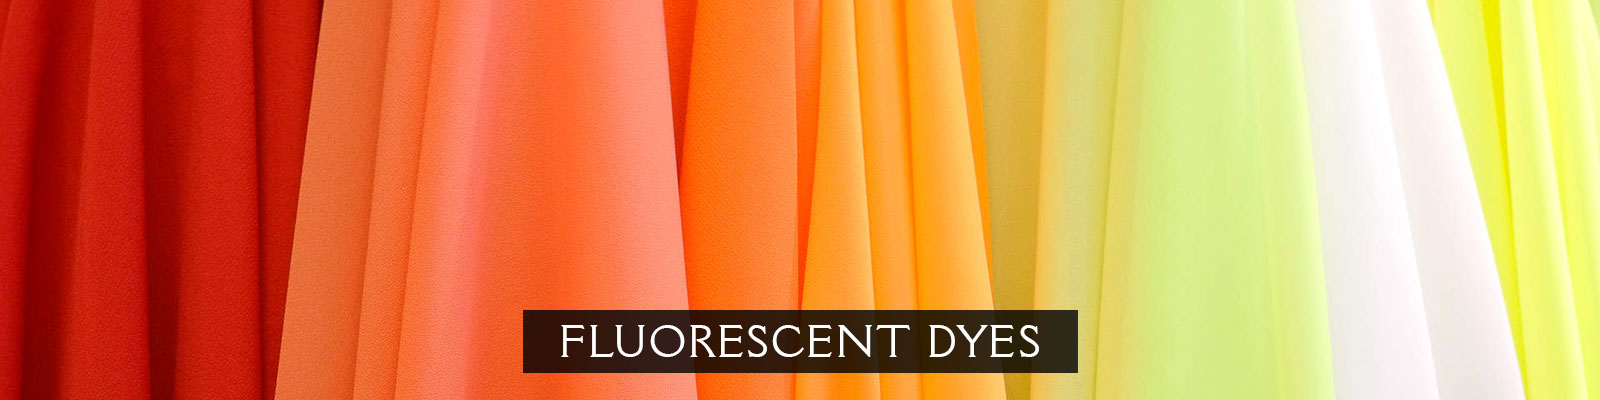 FLUORESCENT DYES